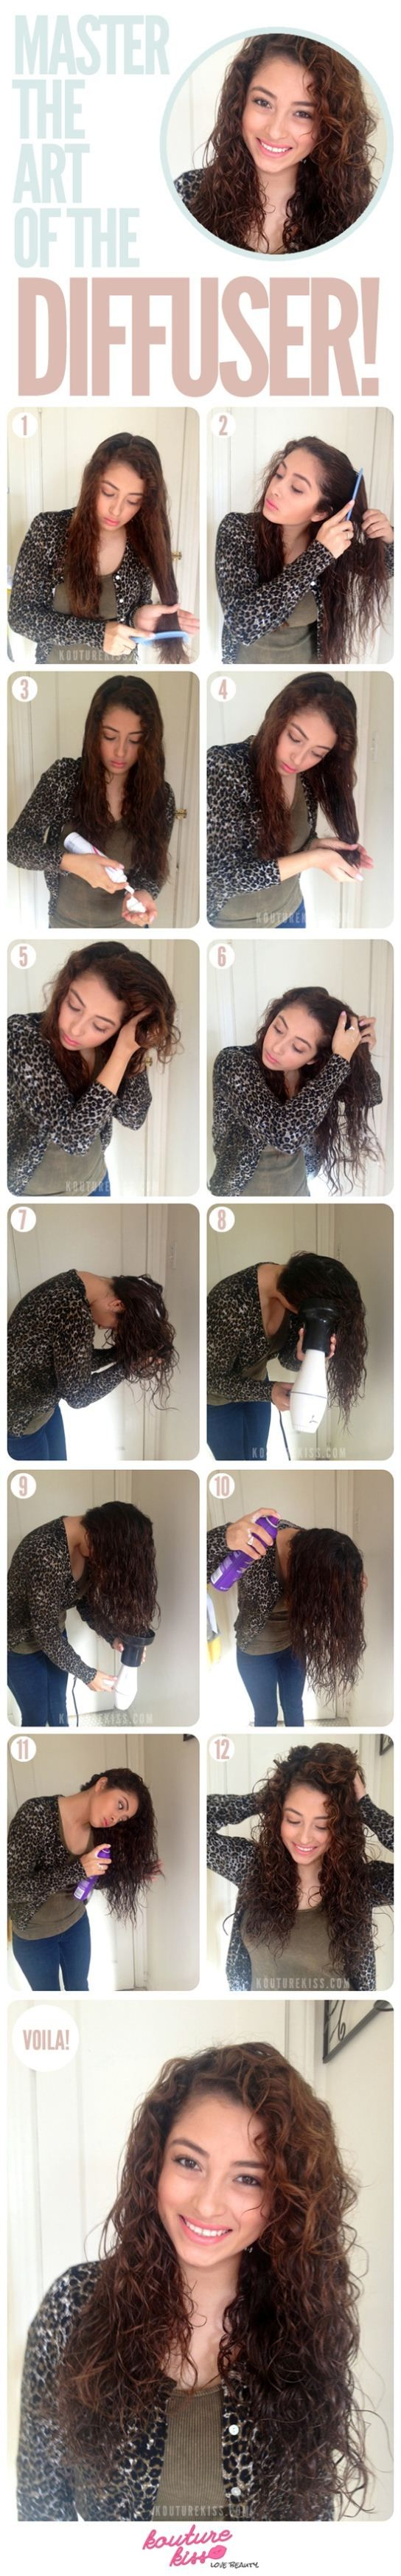 20 Hair Drying Hacks That Will Turn You Into a Hair Goddess